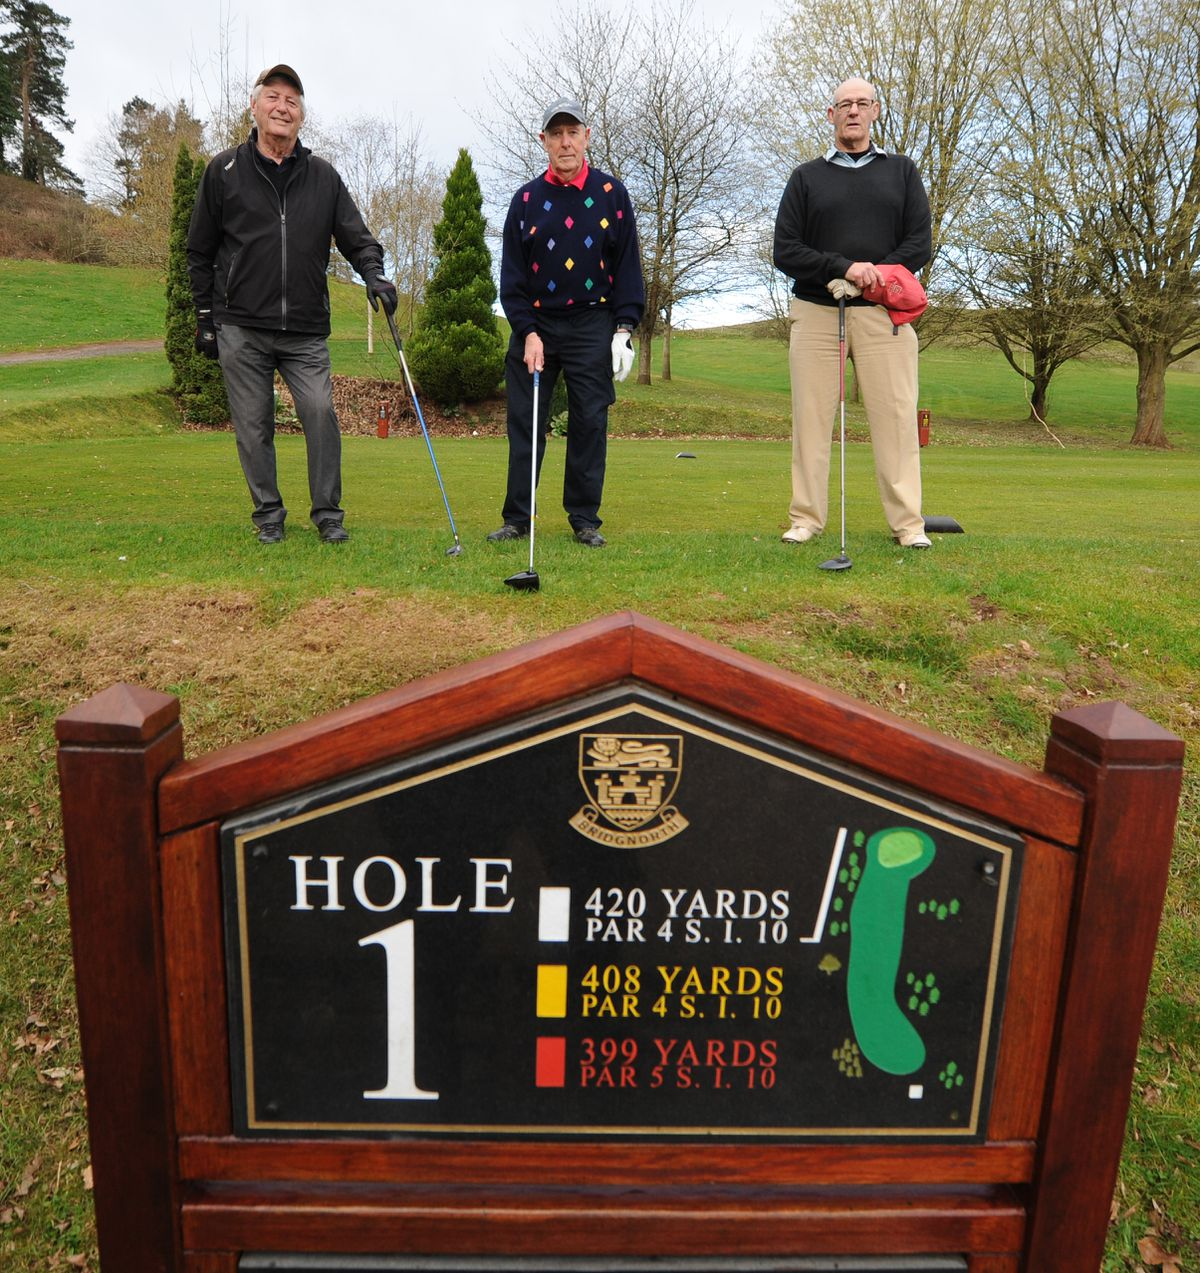 Back playing golf as Bridgnorth Golf Club reopens were from left, Mike Clarke, Arnold Rhoden and Bob Bosson.